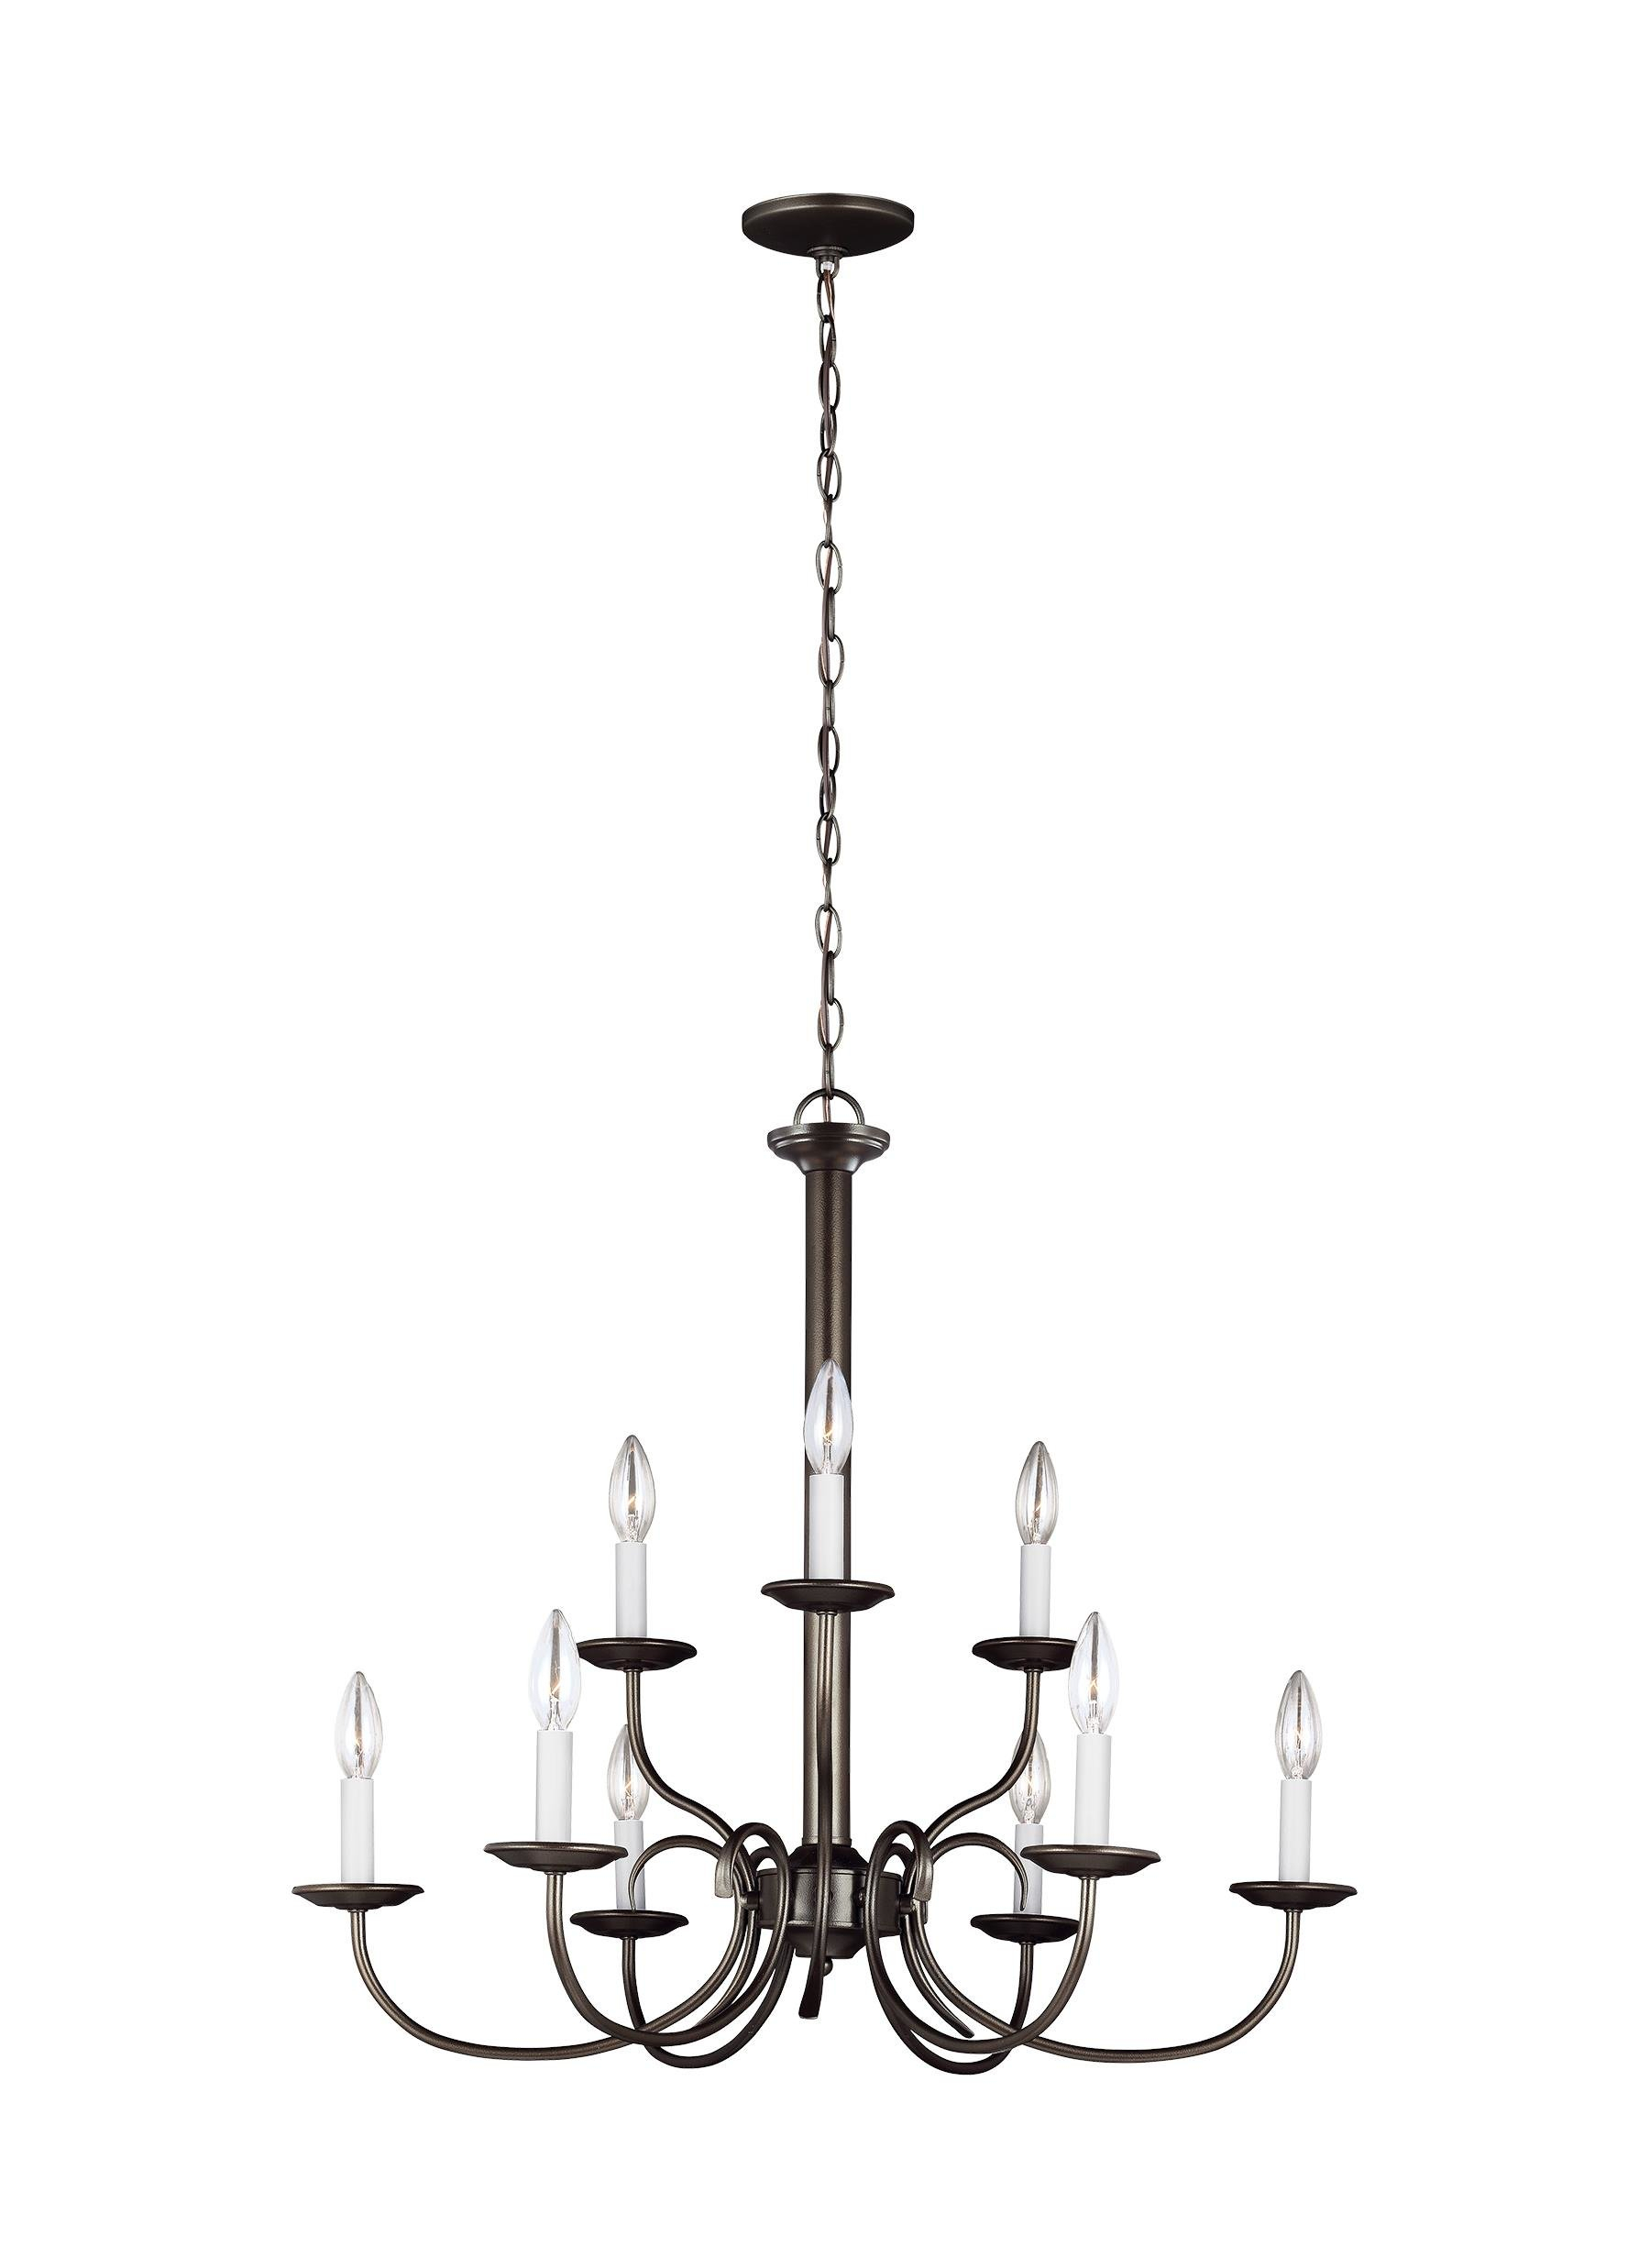 Giverny 9 Light Chandelier | Wayfair Regarding Giverny 9 Light Candle Style Chandeliers (View 7 of 30)